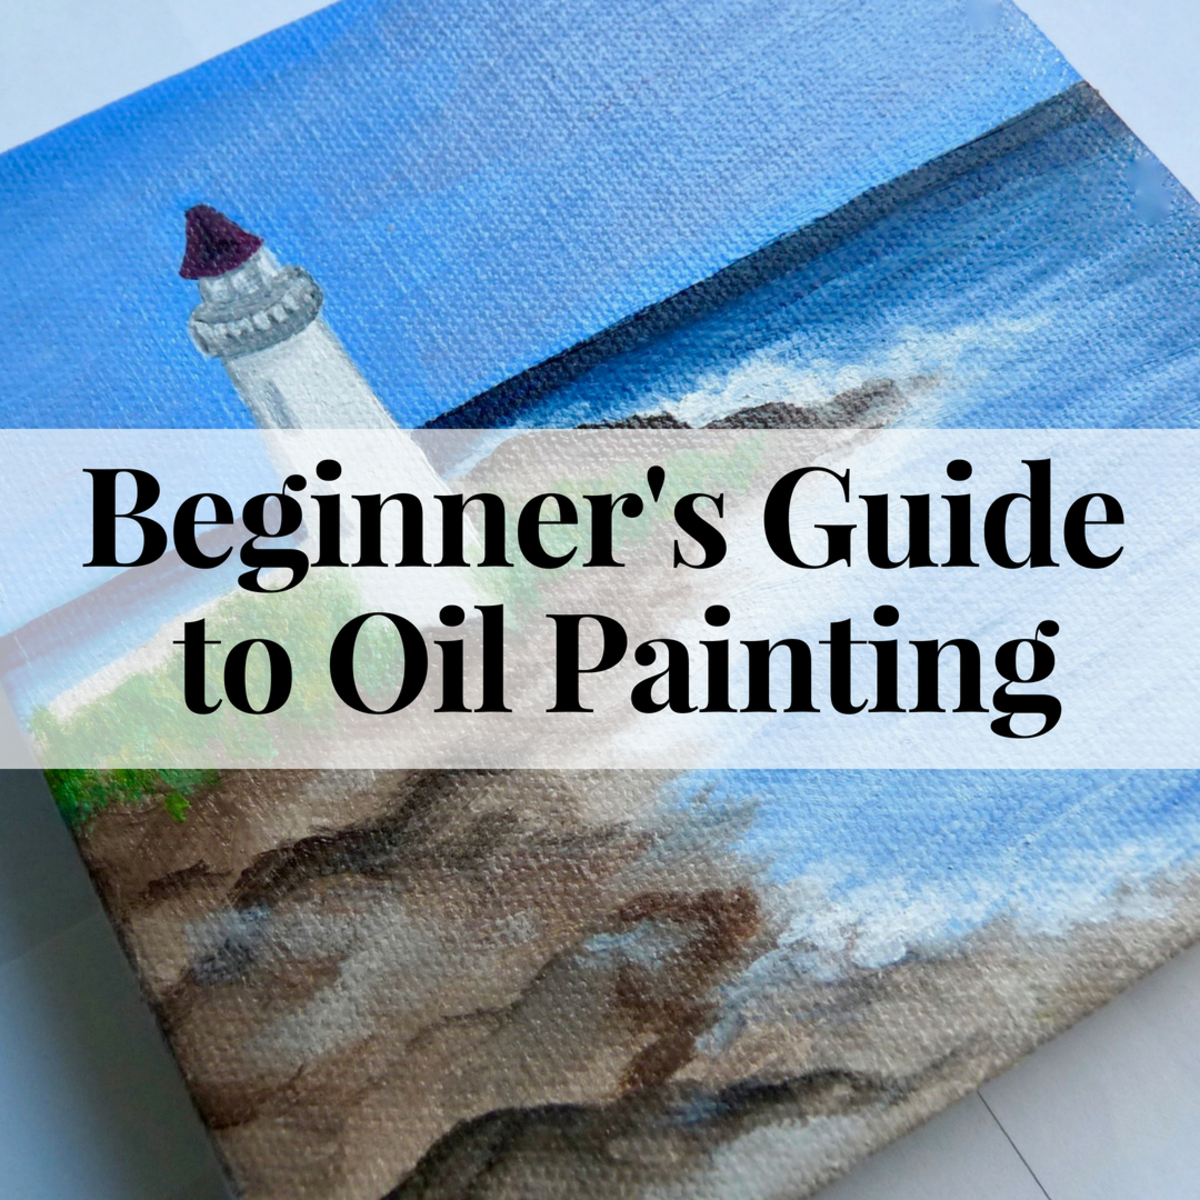 Beginner's Guide to Oil Painting: Step-by-Step Tutorial